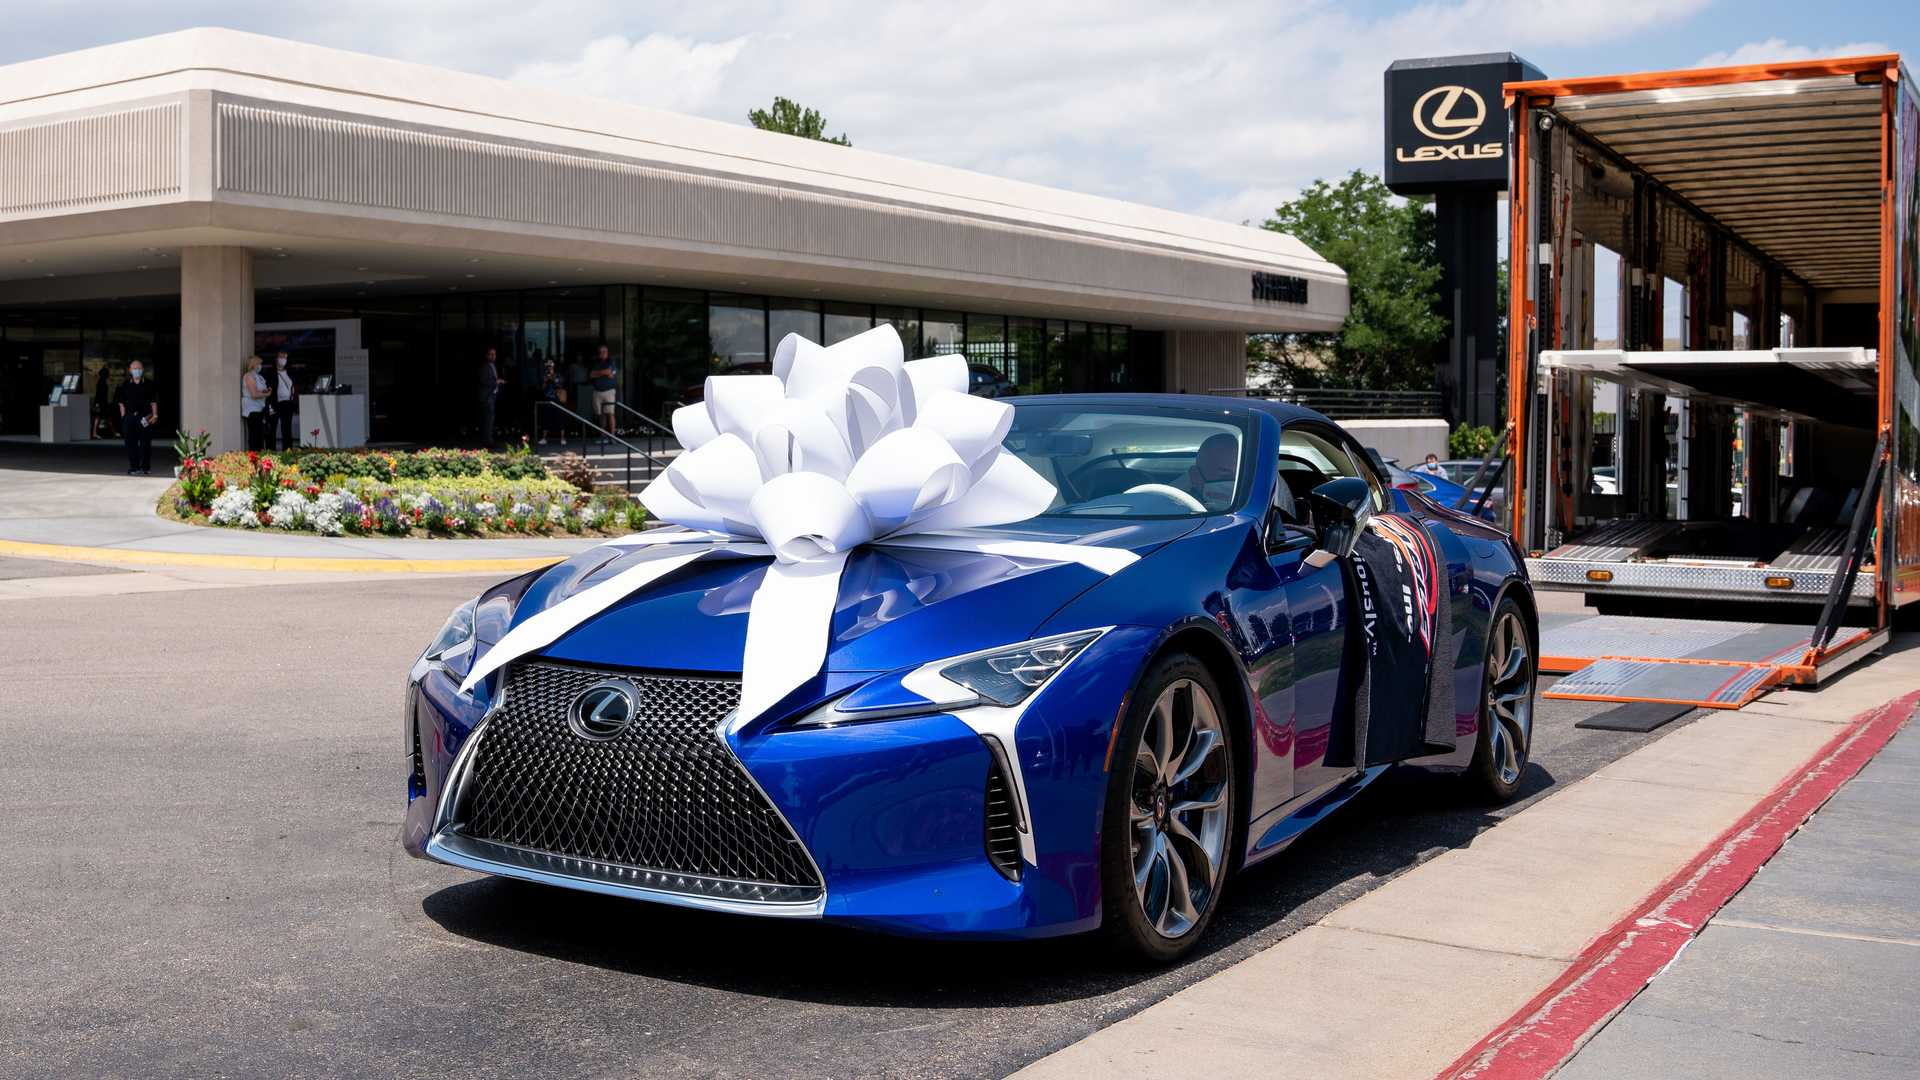 2016 - [Lexus] LC 500 - Page 8 Lexus-lc-500-convertible-charity-delivery-bow